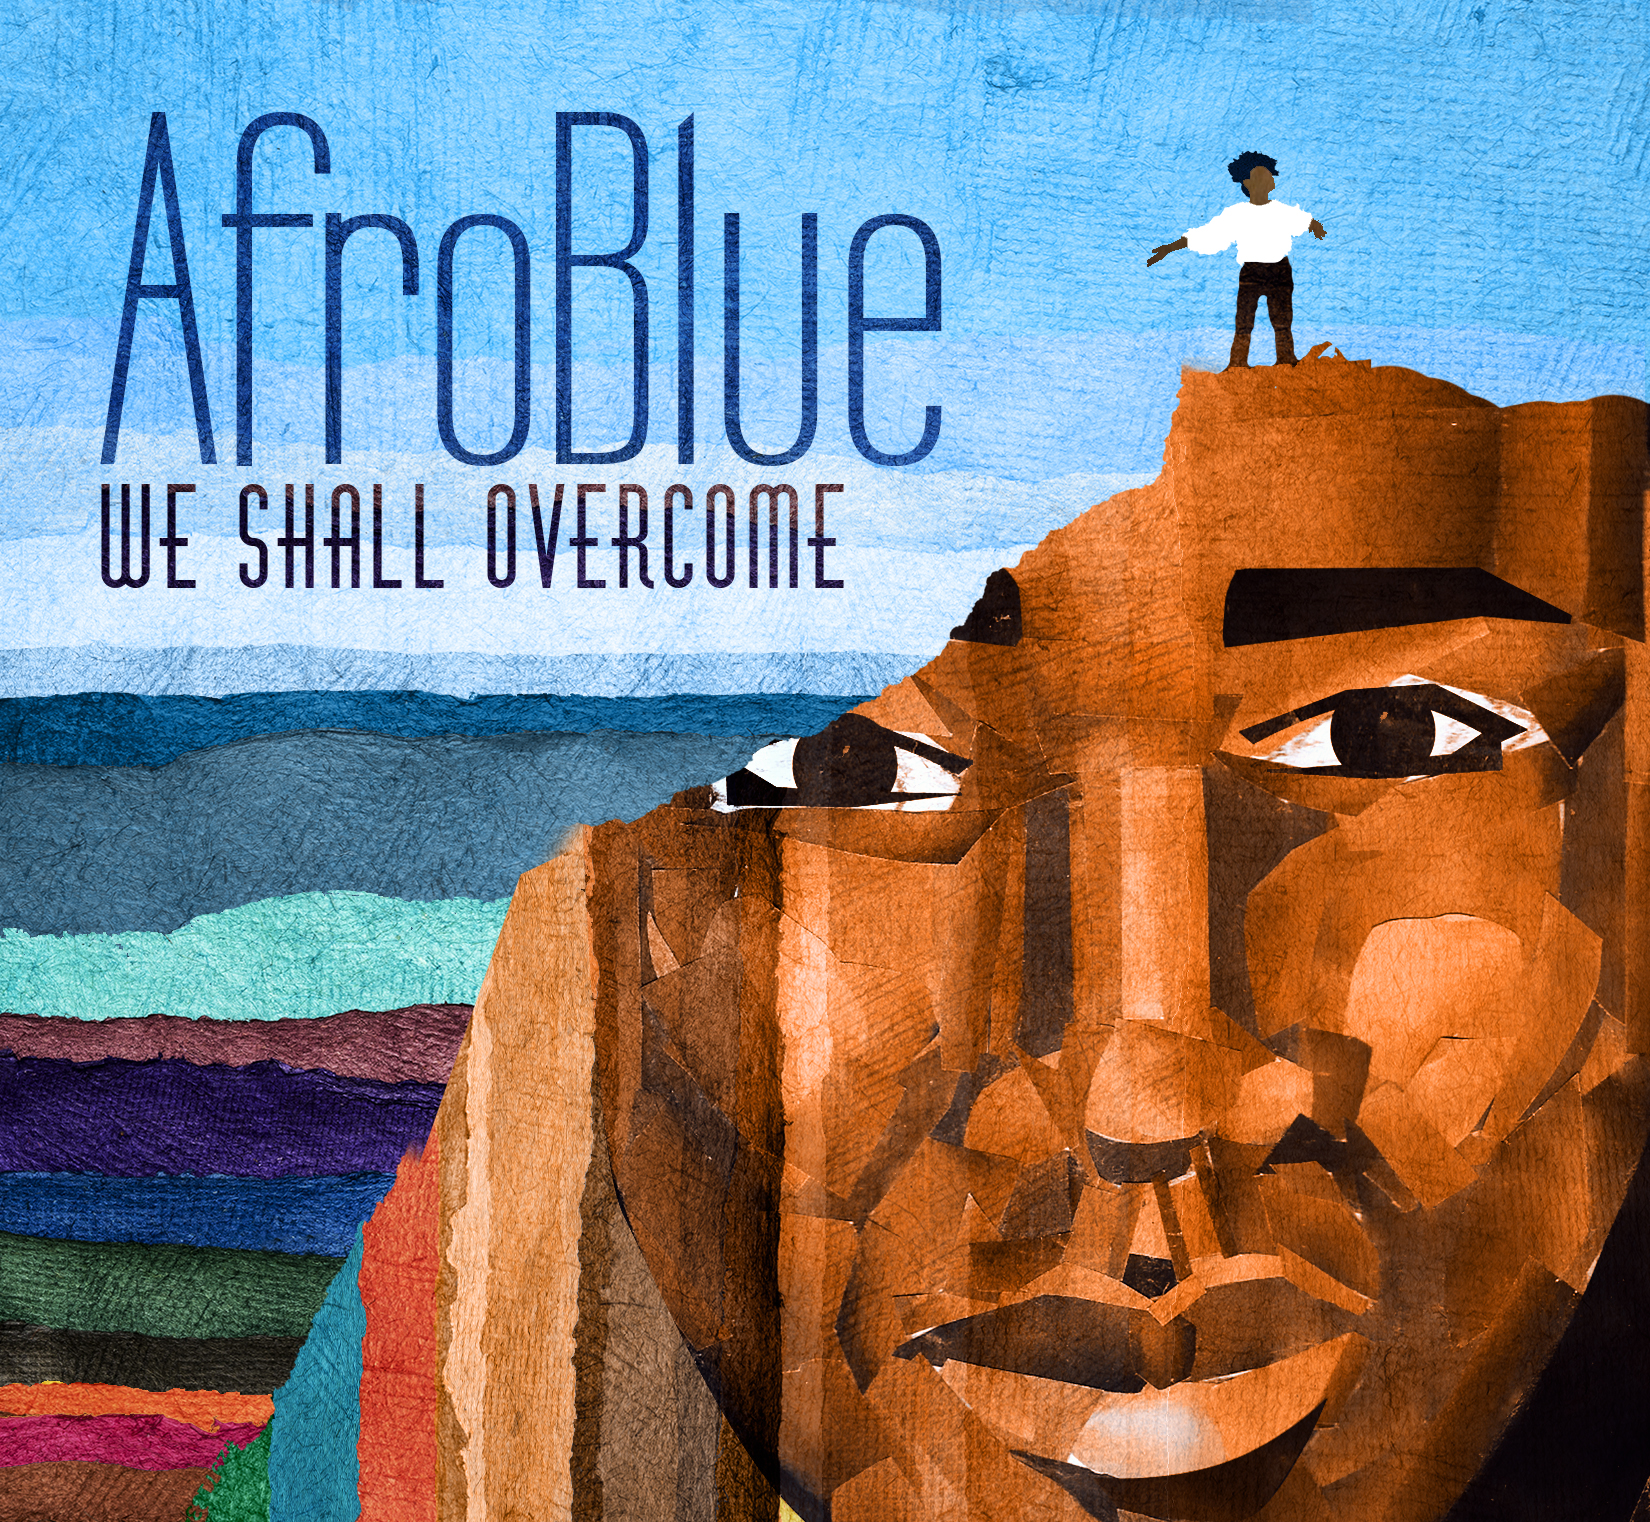 Afro Blue - We Shall Overcome Album Cover